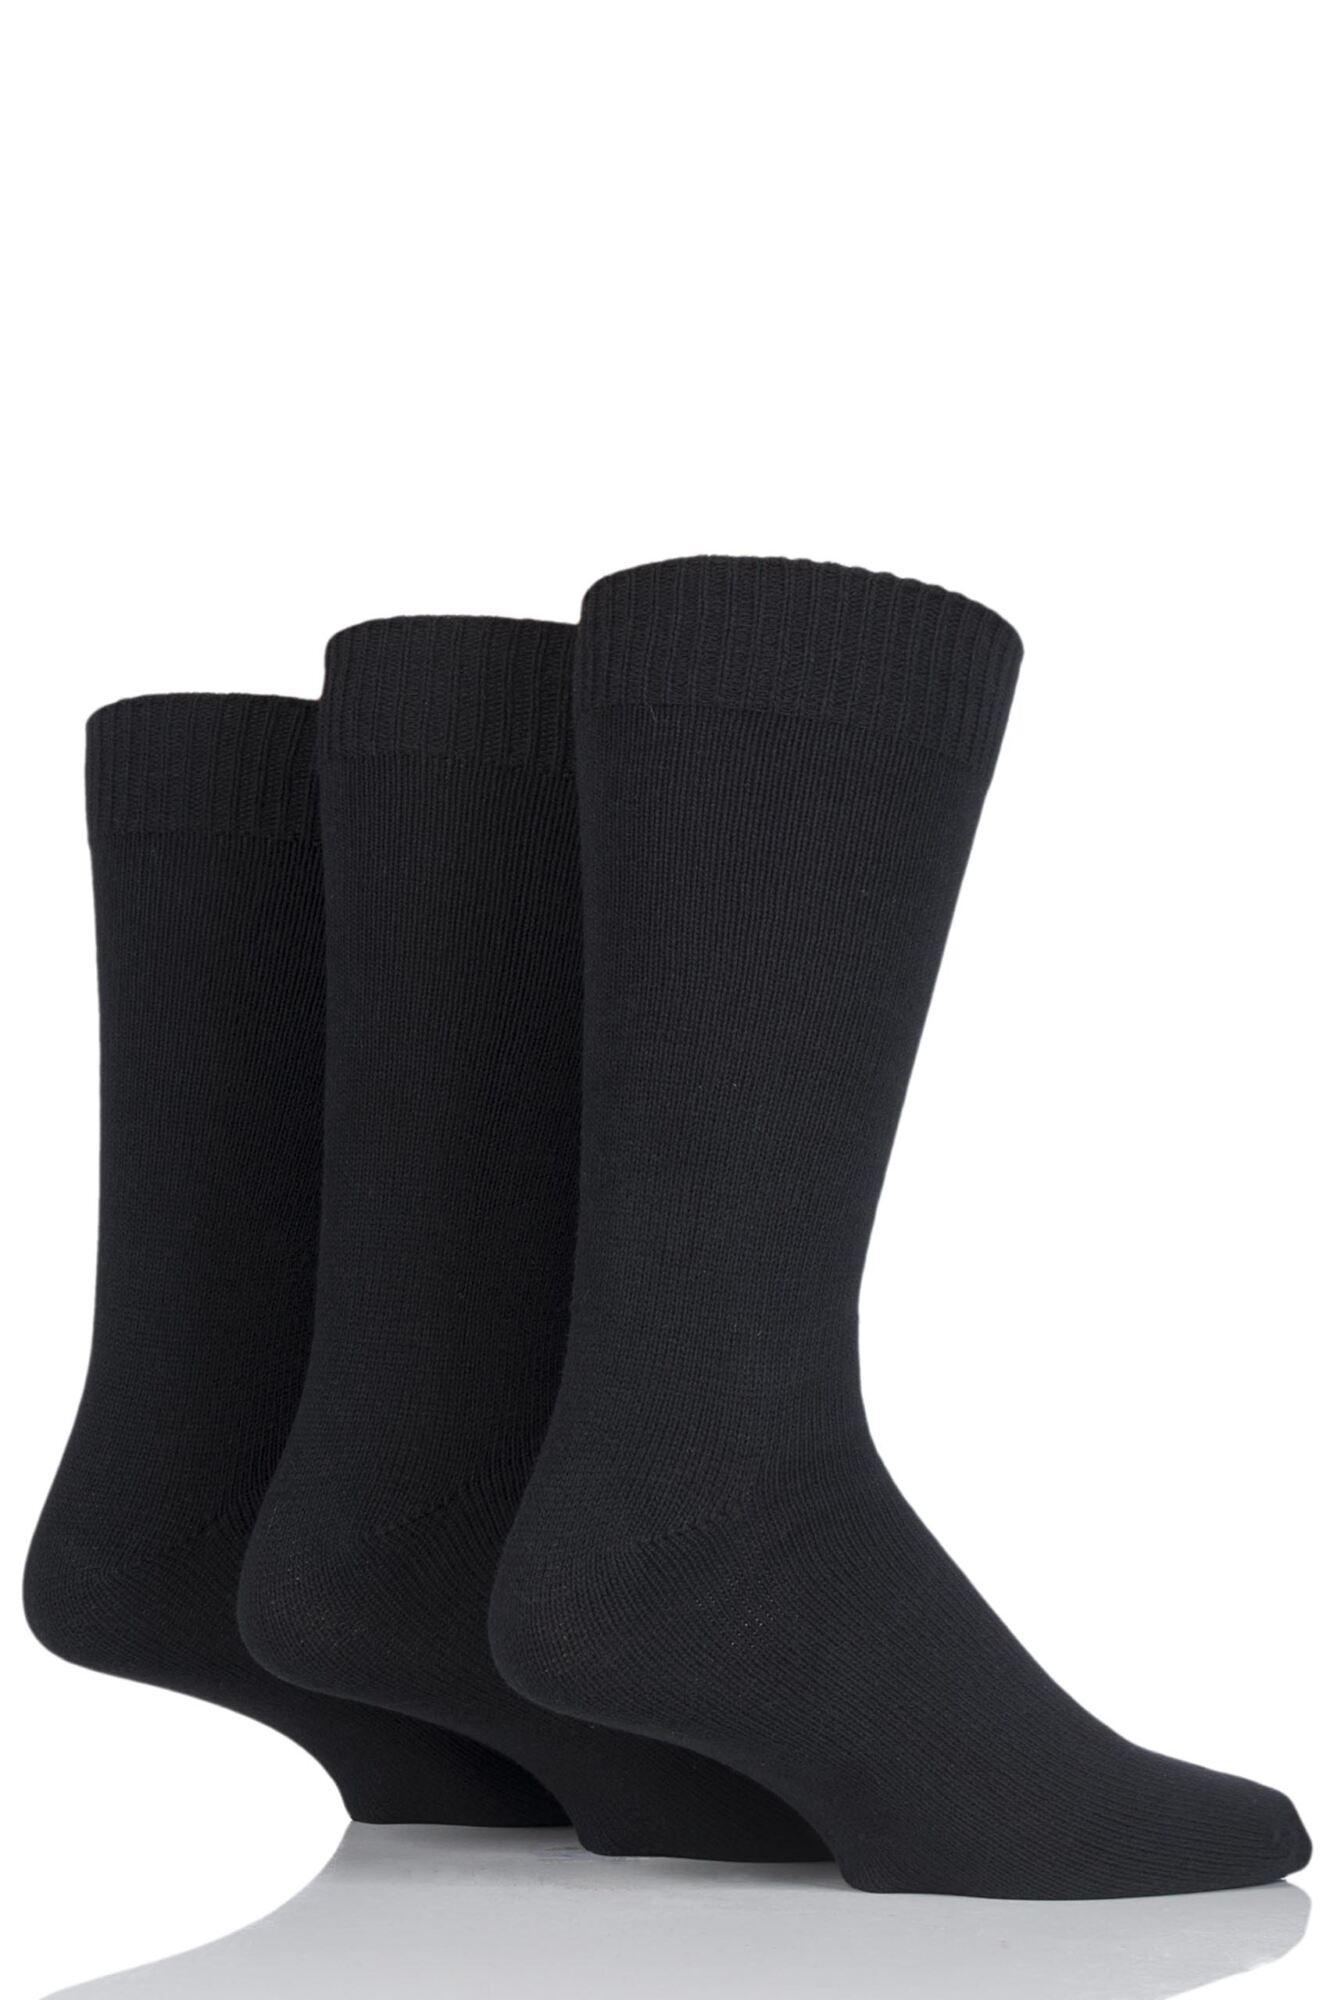 3 Pair Cotton Socks Men's - SOCKSHOP